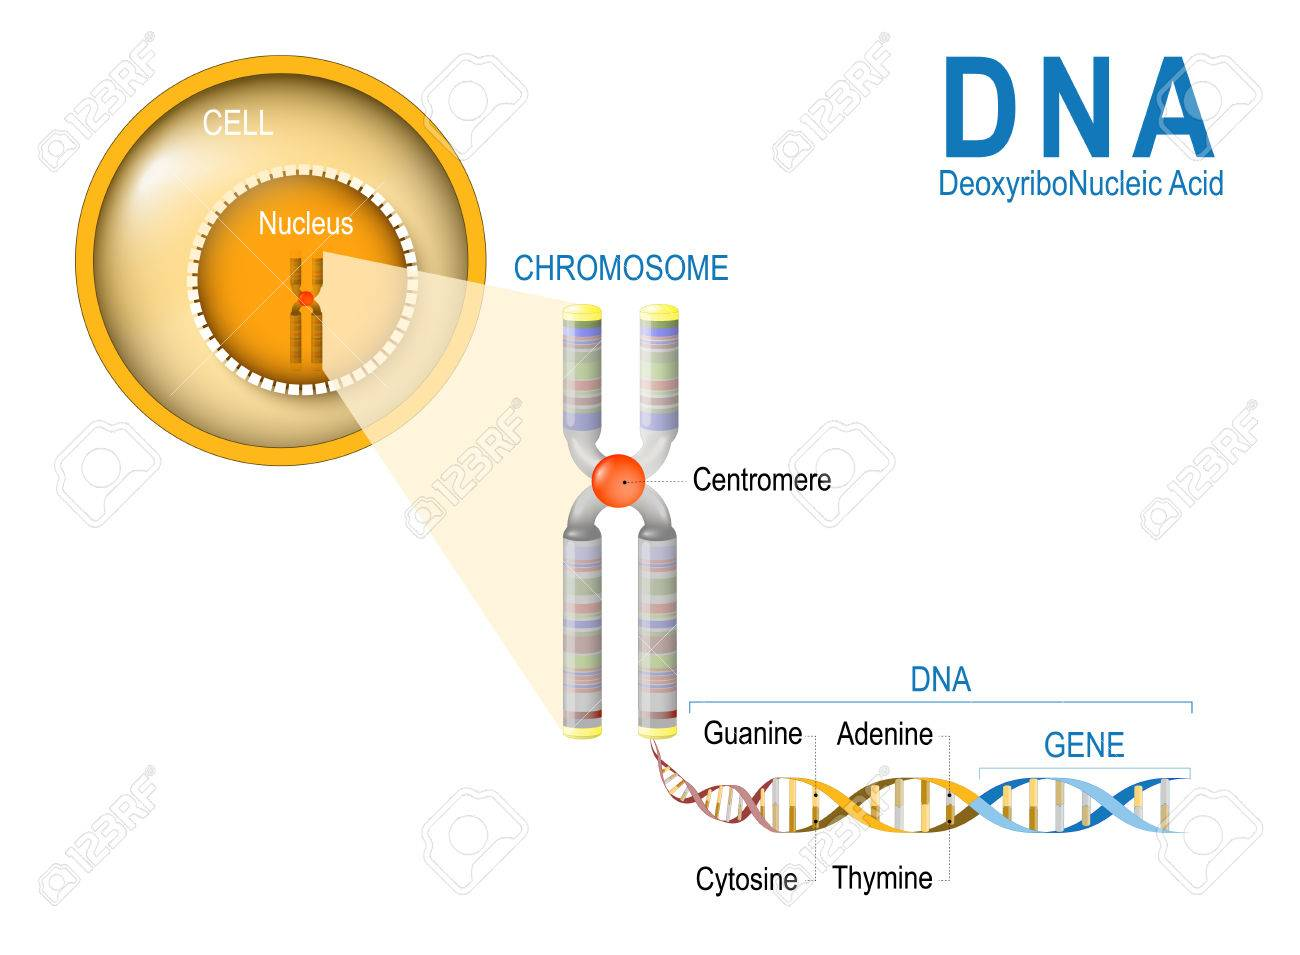 Cell chromosome dna and gene cell structure the dna molecule cell structure the dna molecule is a ccuart Images